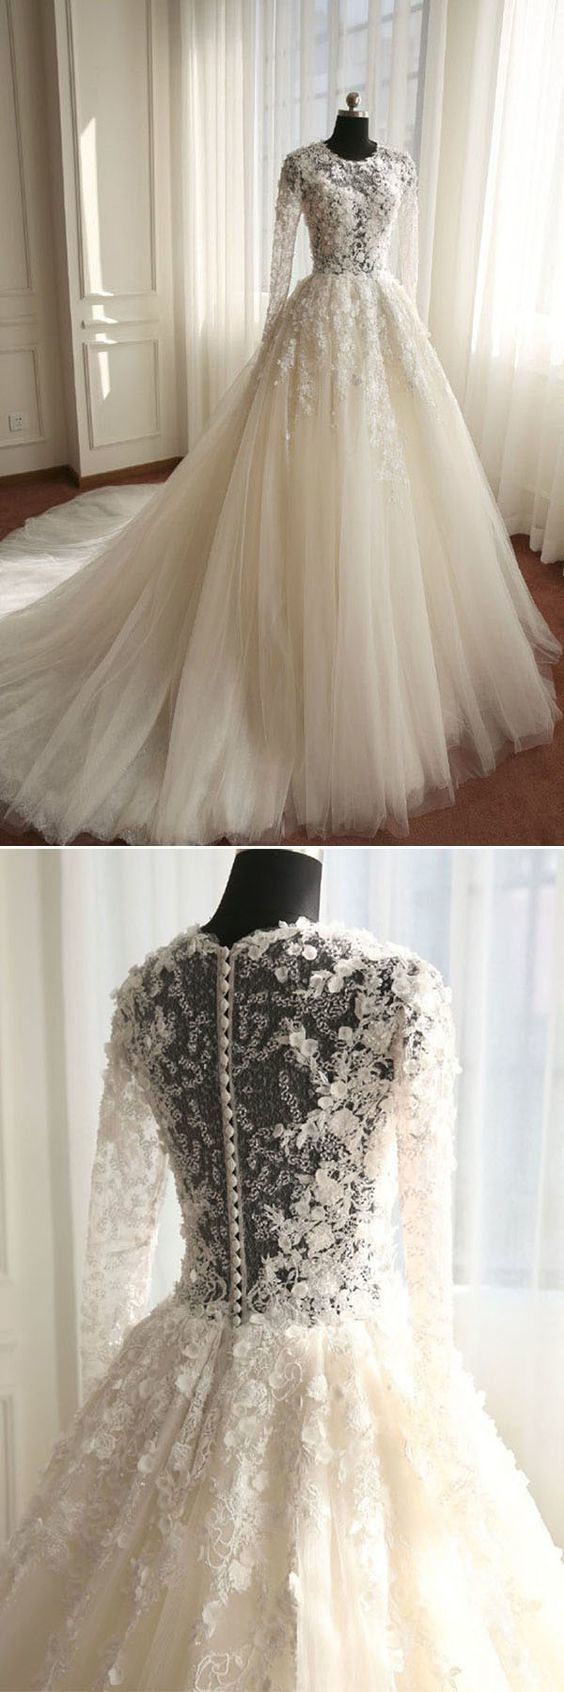 Ivory tulle wedding dress with long sleeves